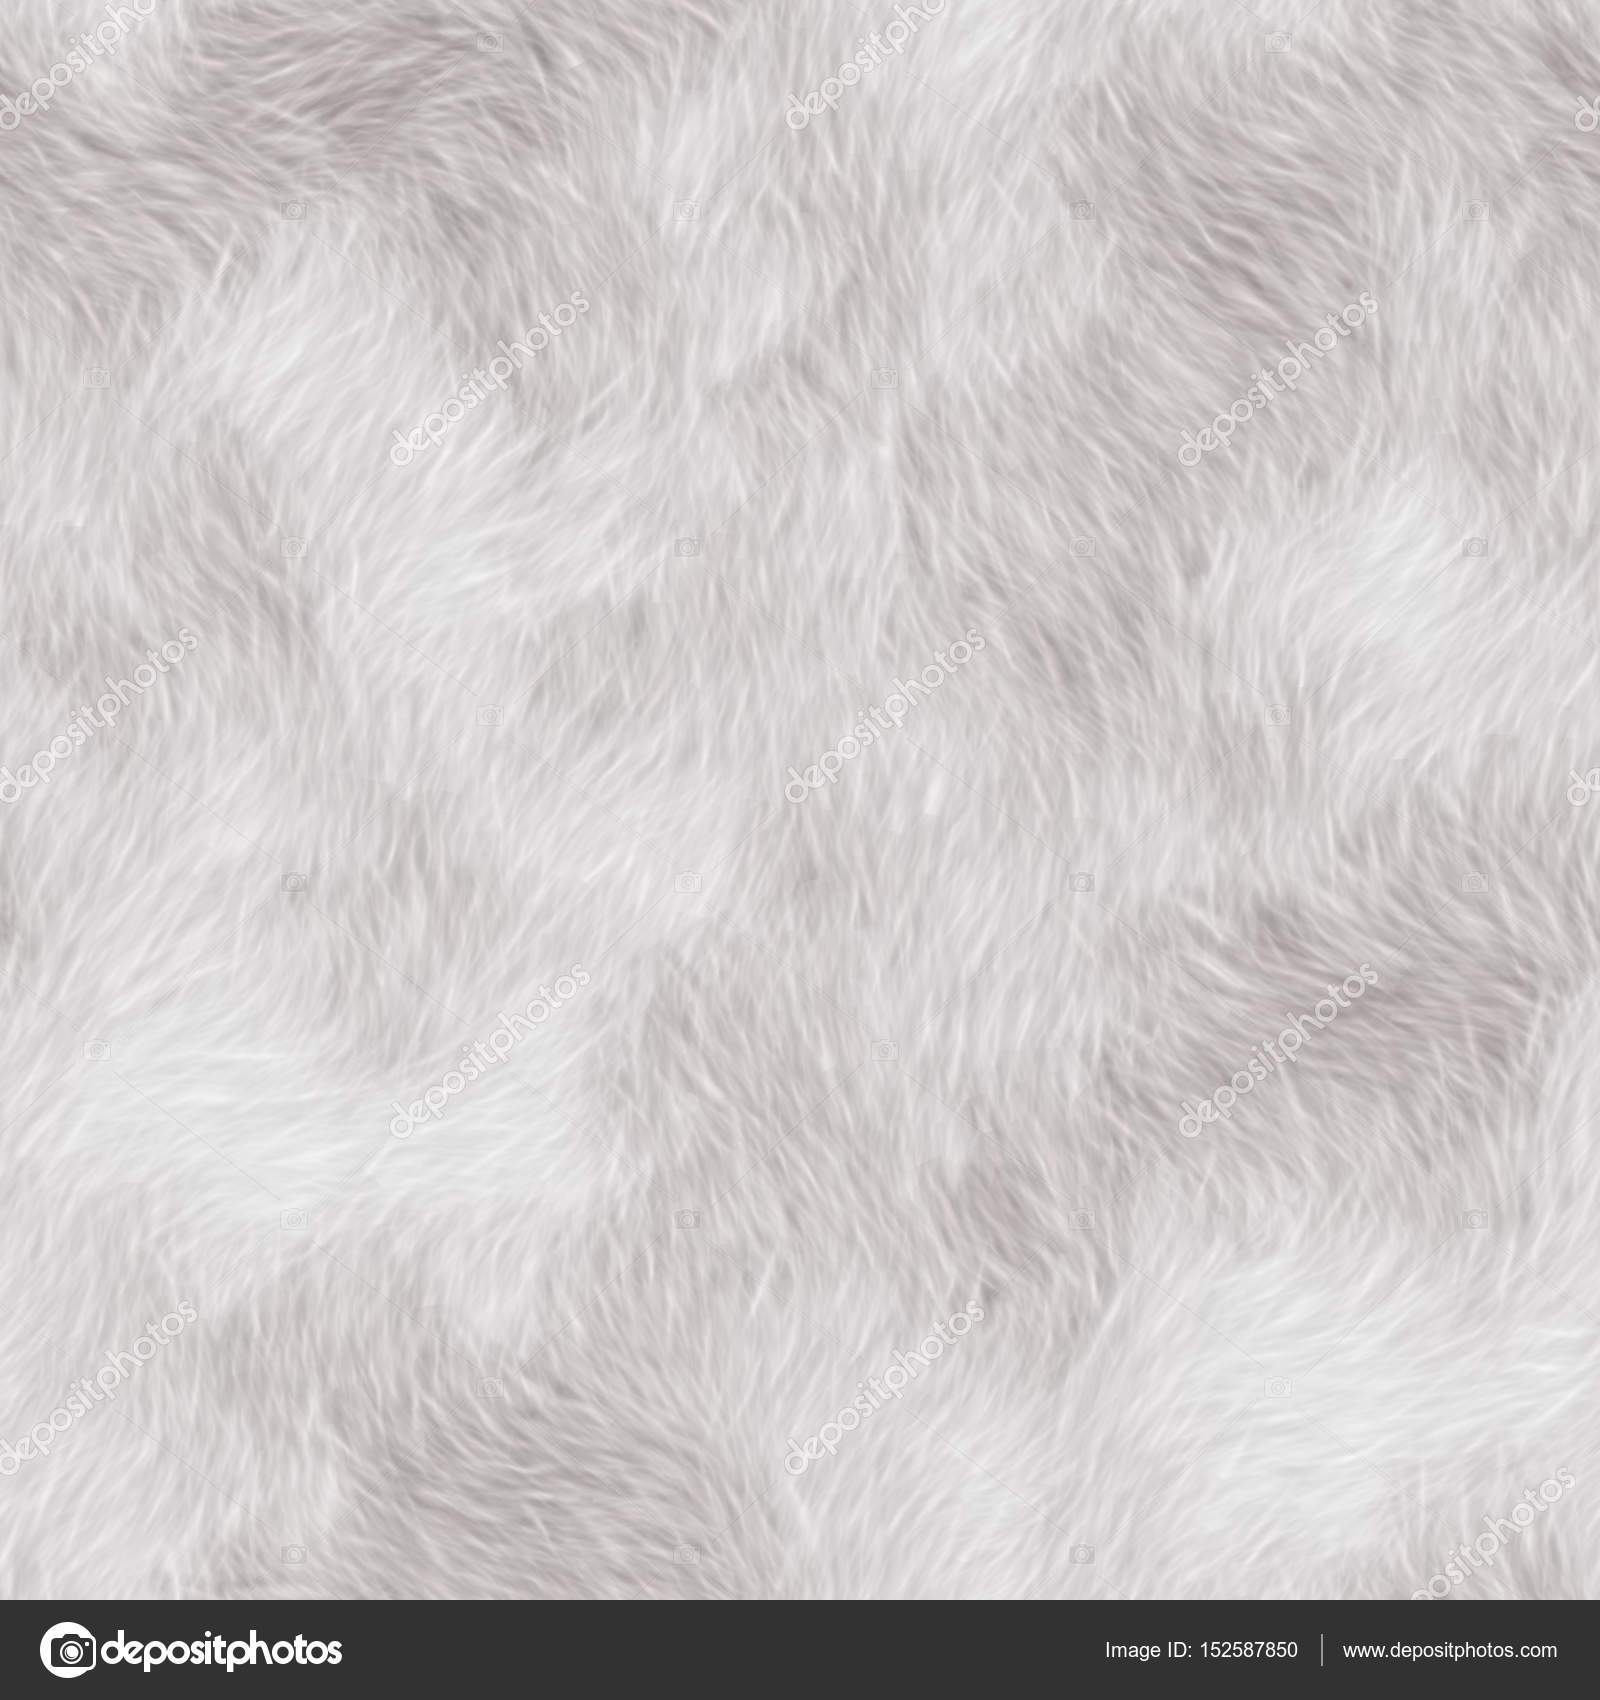 White fur texture. Seamless texture ore background. Fabric fur t ...